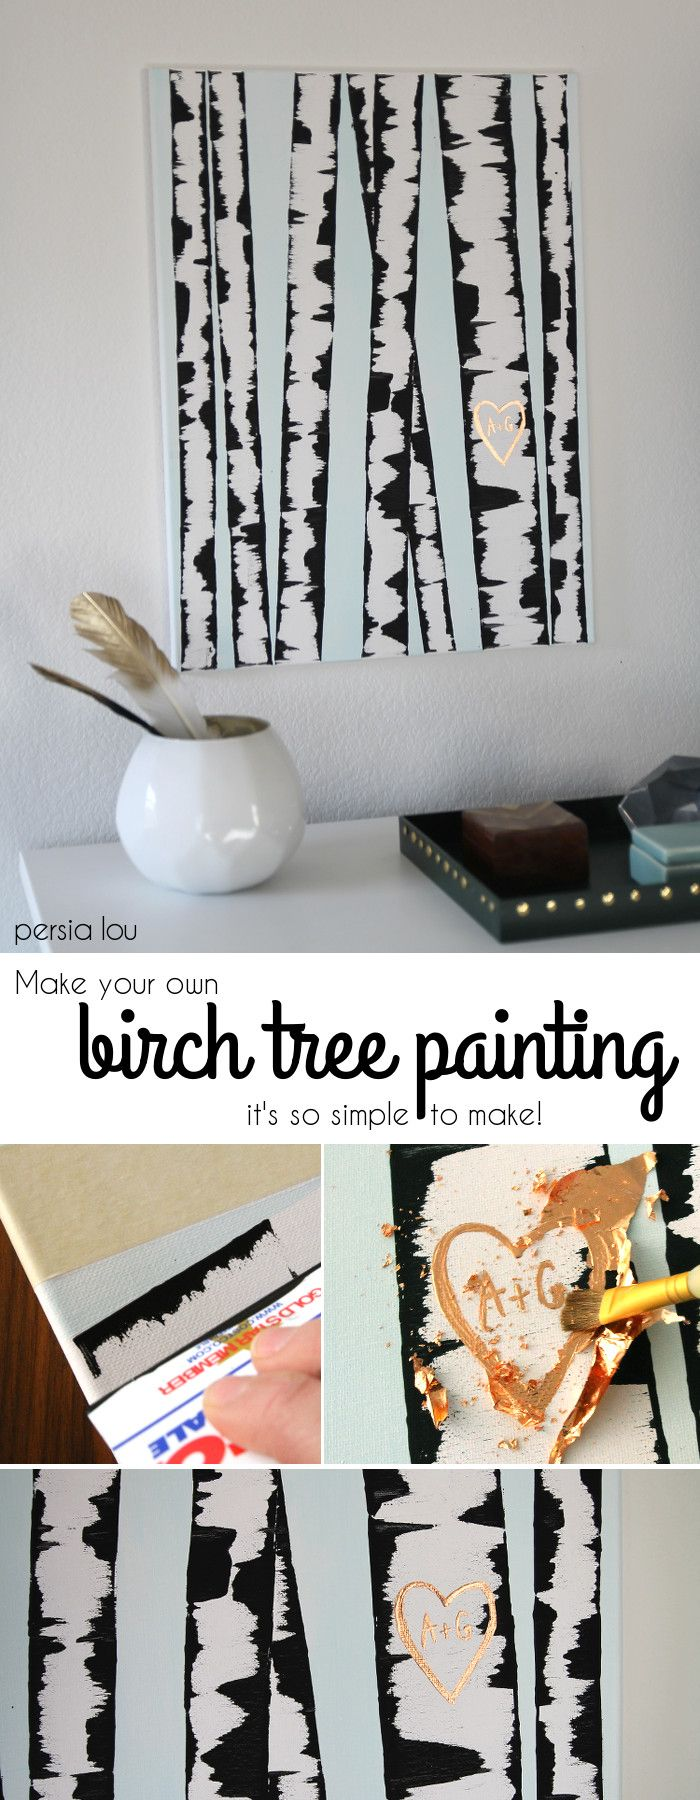 Best 25+ Canvas art ideas on Pinterest | Tree canvas, Three canvas painting  and Canvas painting projects